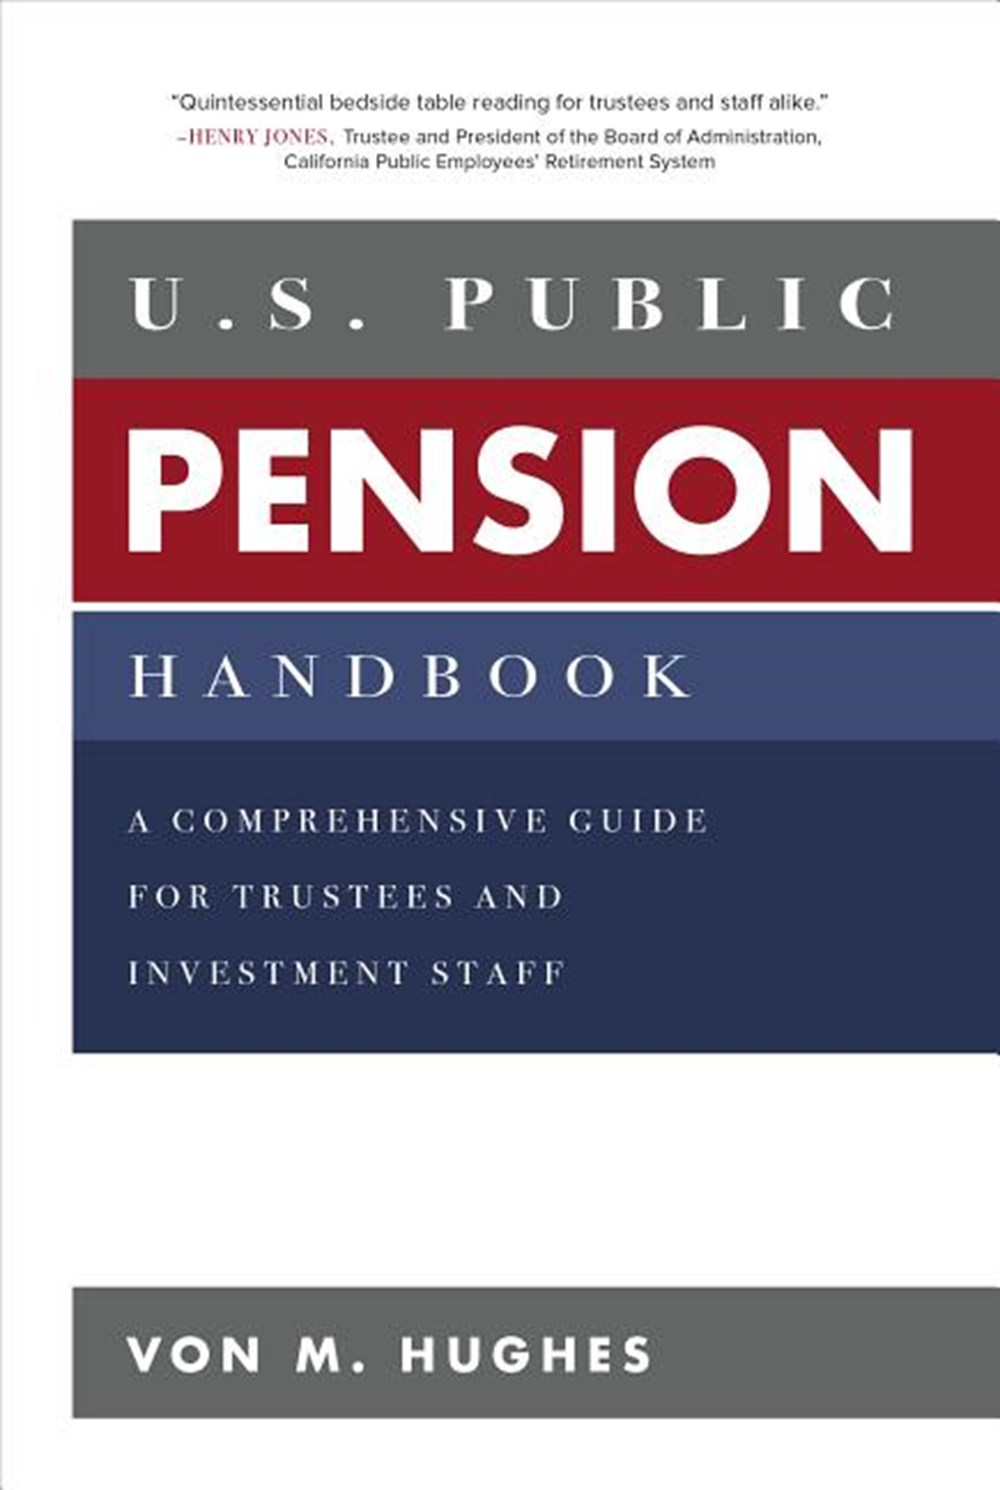 U.S. Public Pension Handbook A Comprehensive Guide for Trustees and Investment Staff